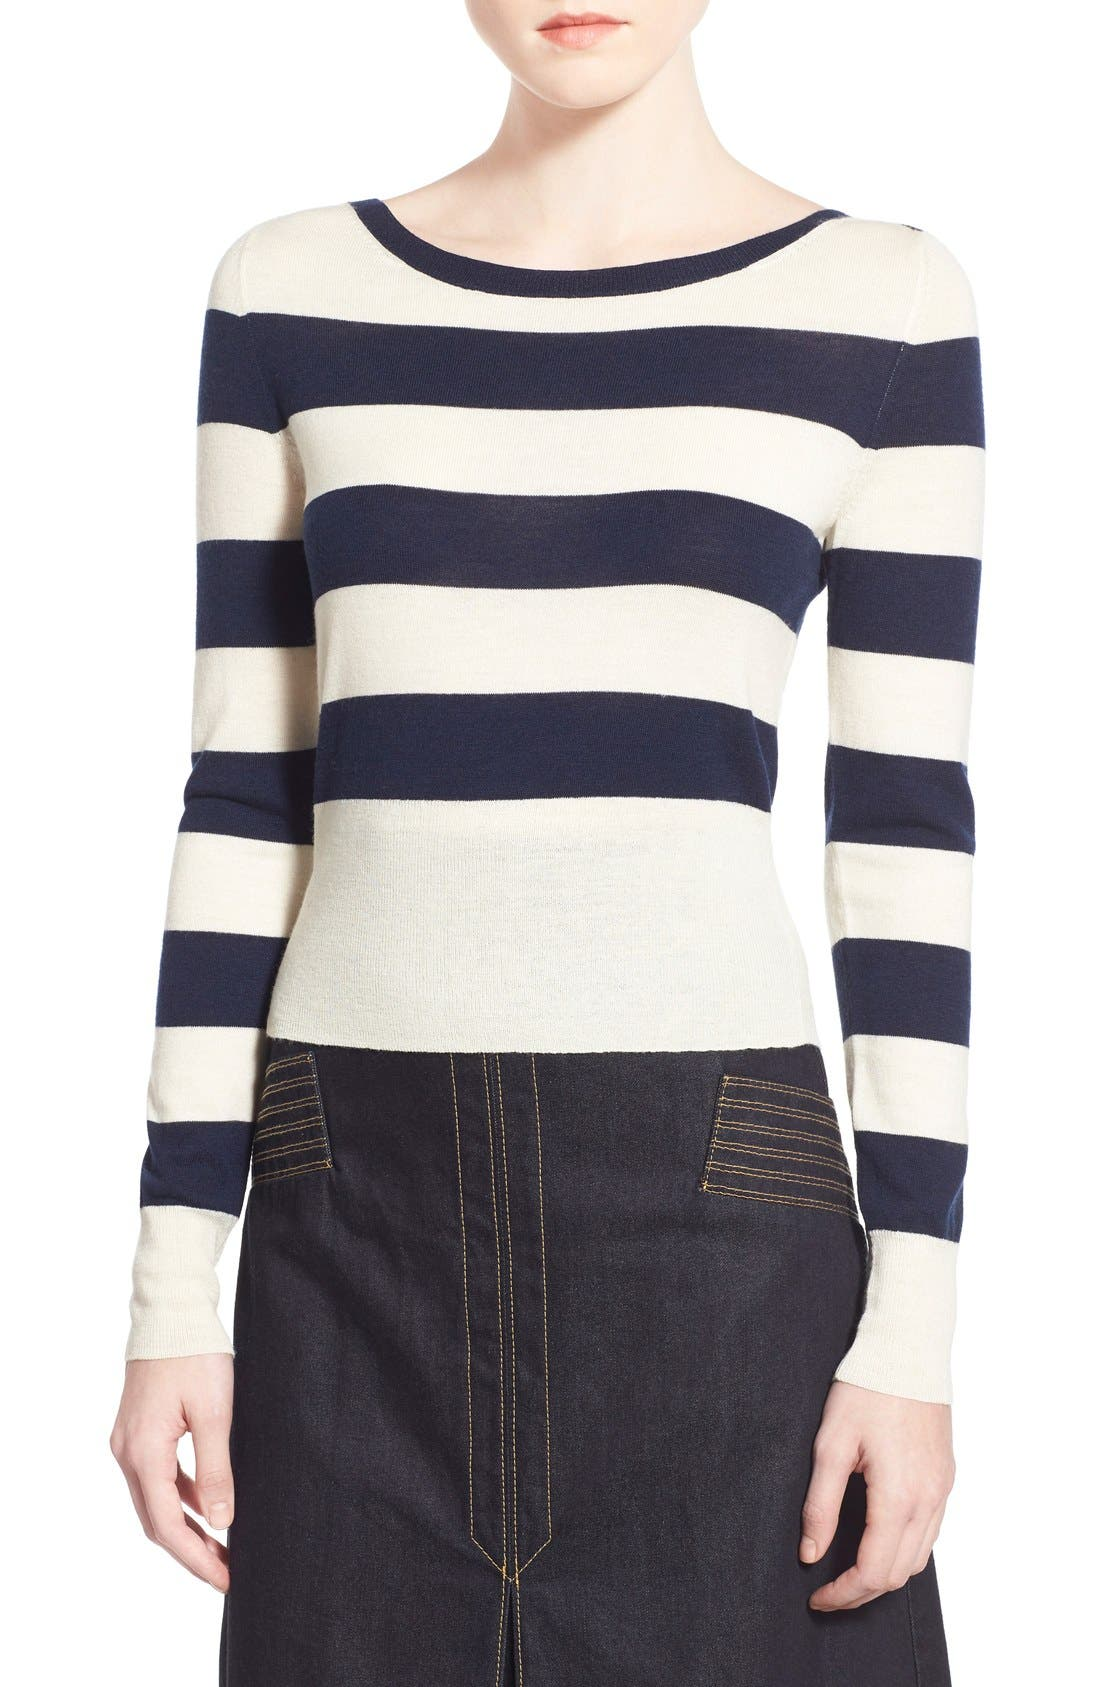 Main Image - Olivia Palermo + Chelsea28 Stripe Wool & Cashmere Pullover